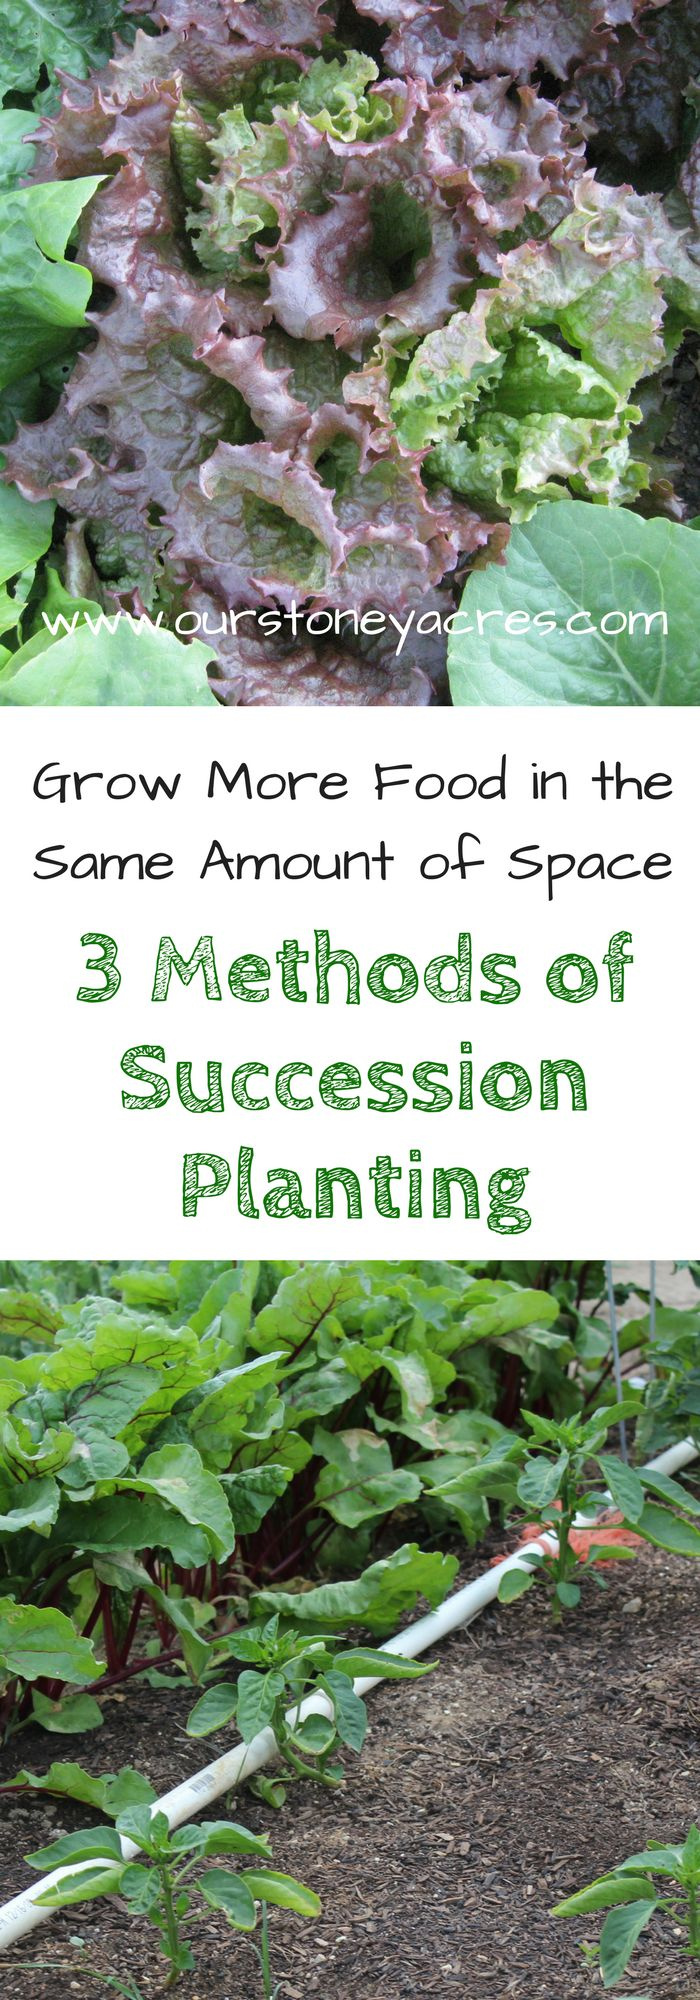 Succession Planting - Succession planting in your backyard garden is a method you can use to increase the production of even the smallest plots.